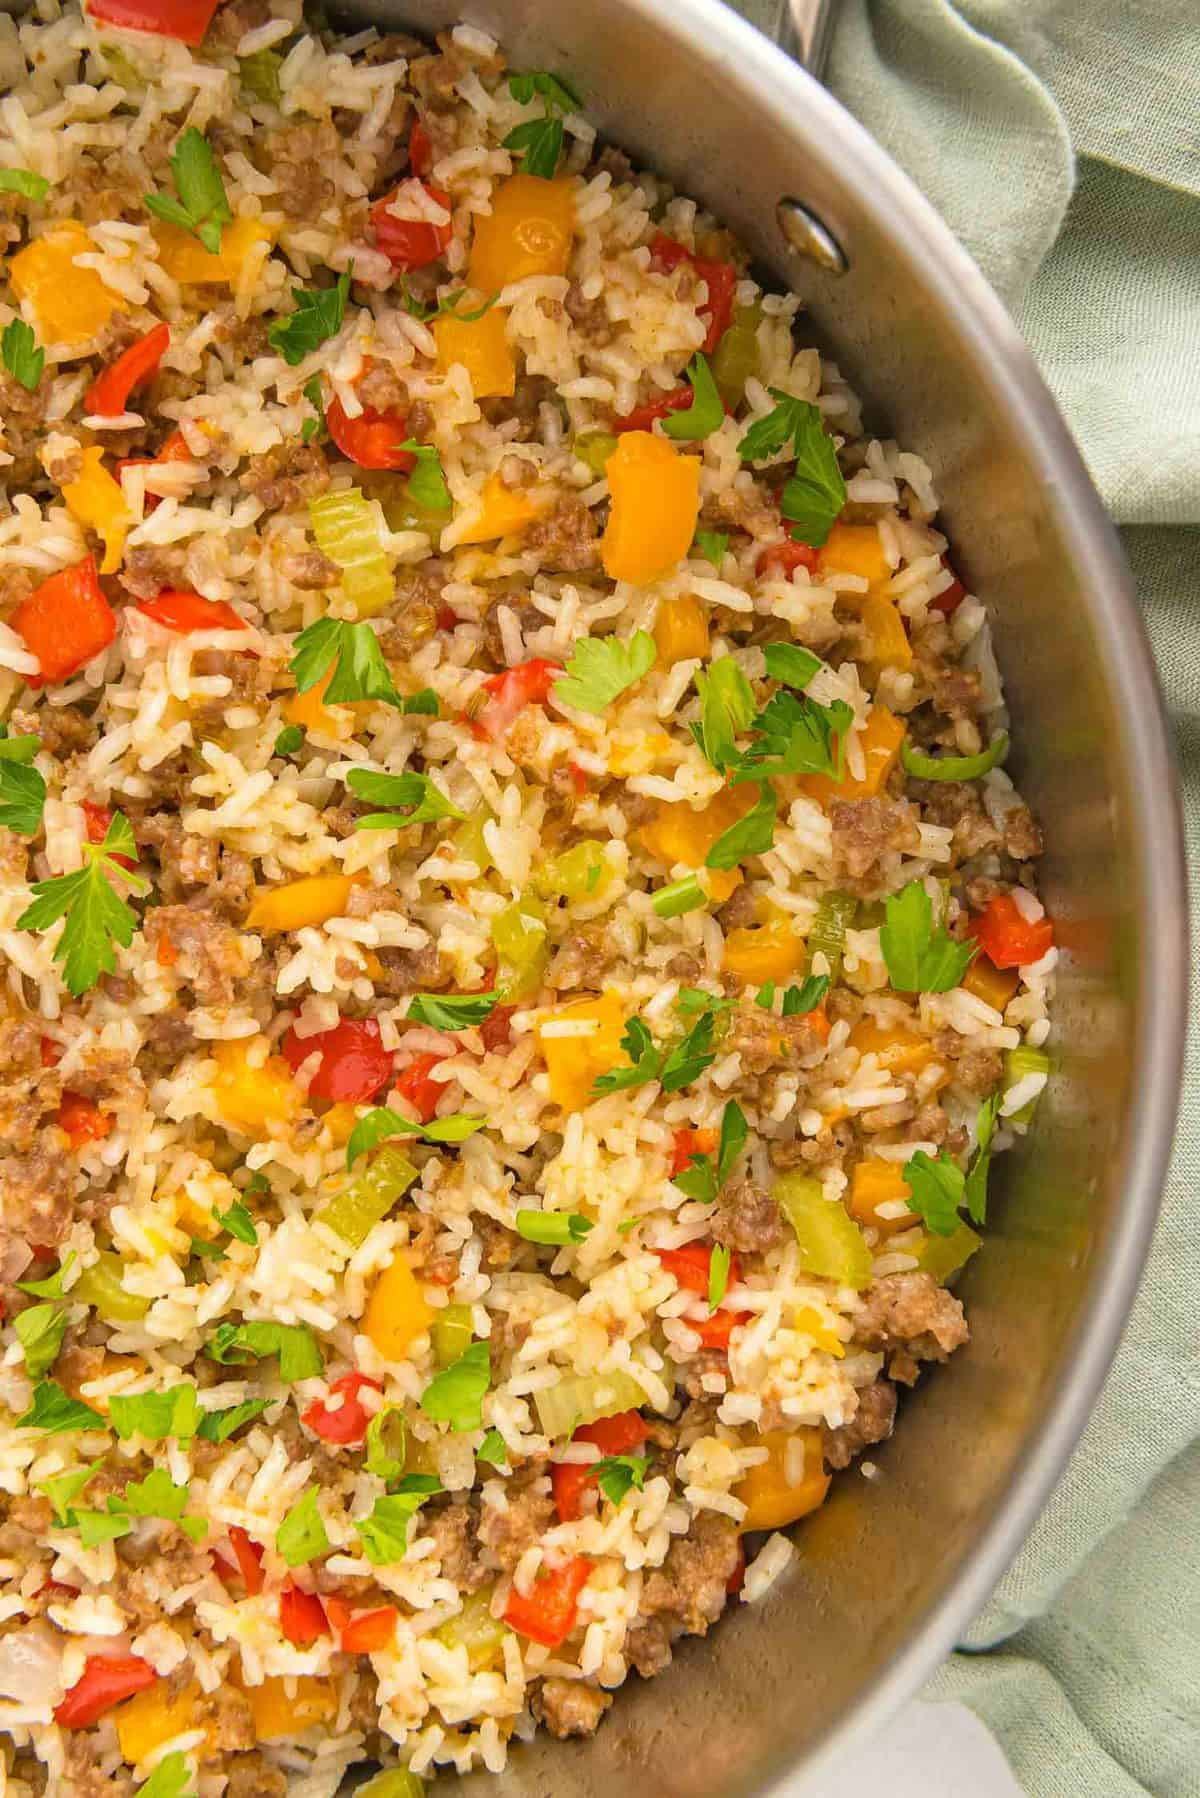 Cooked sausage, rice, and vegetables in a pan.